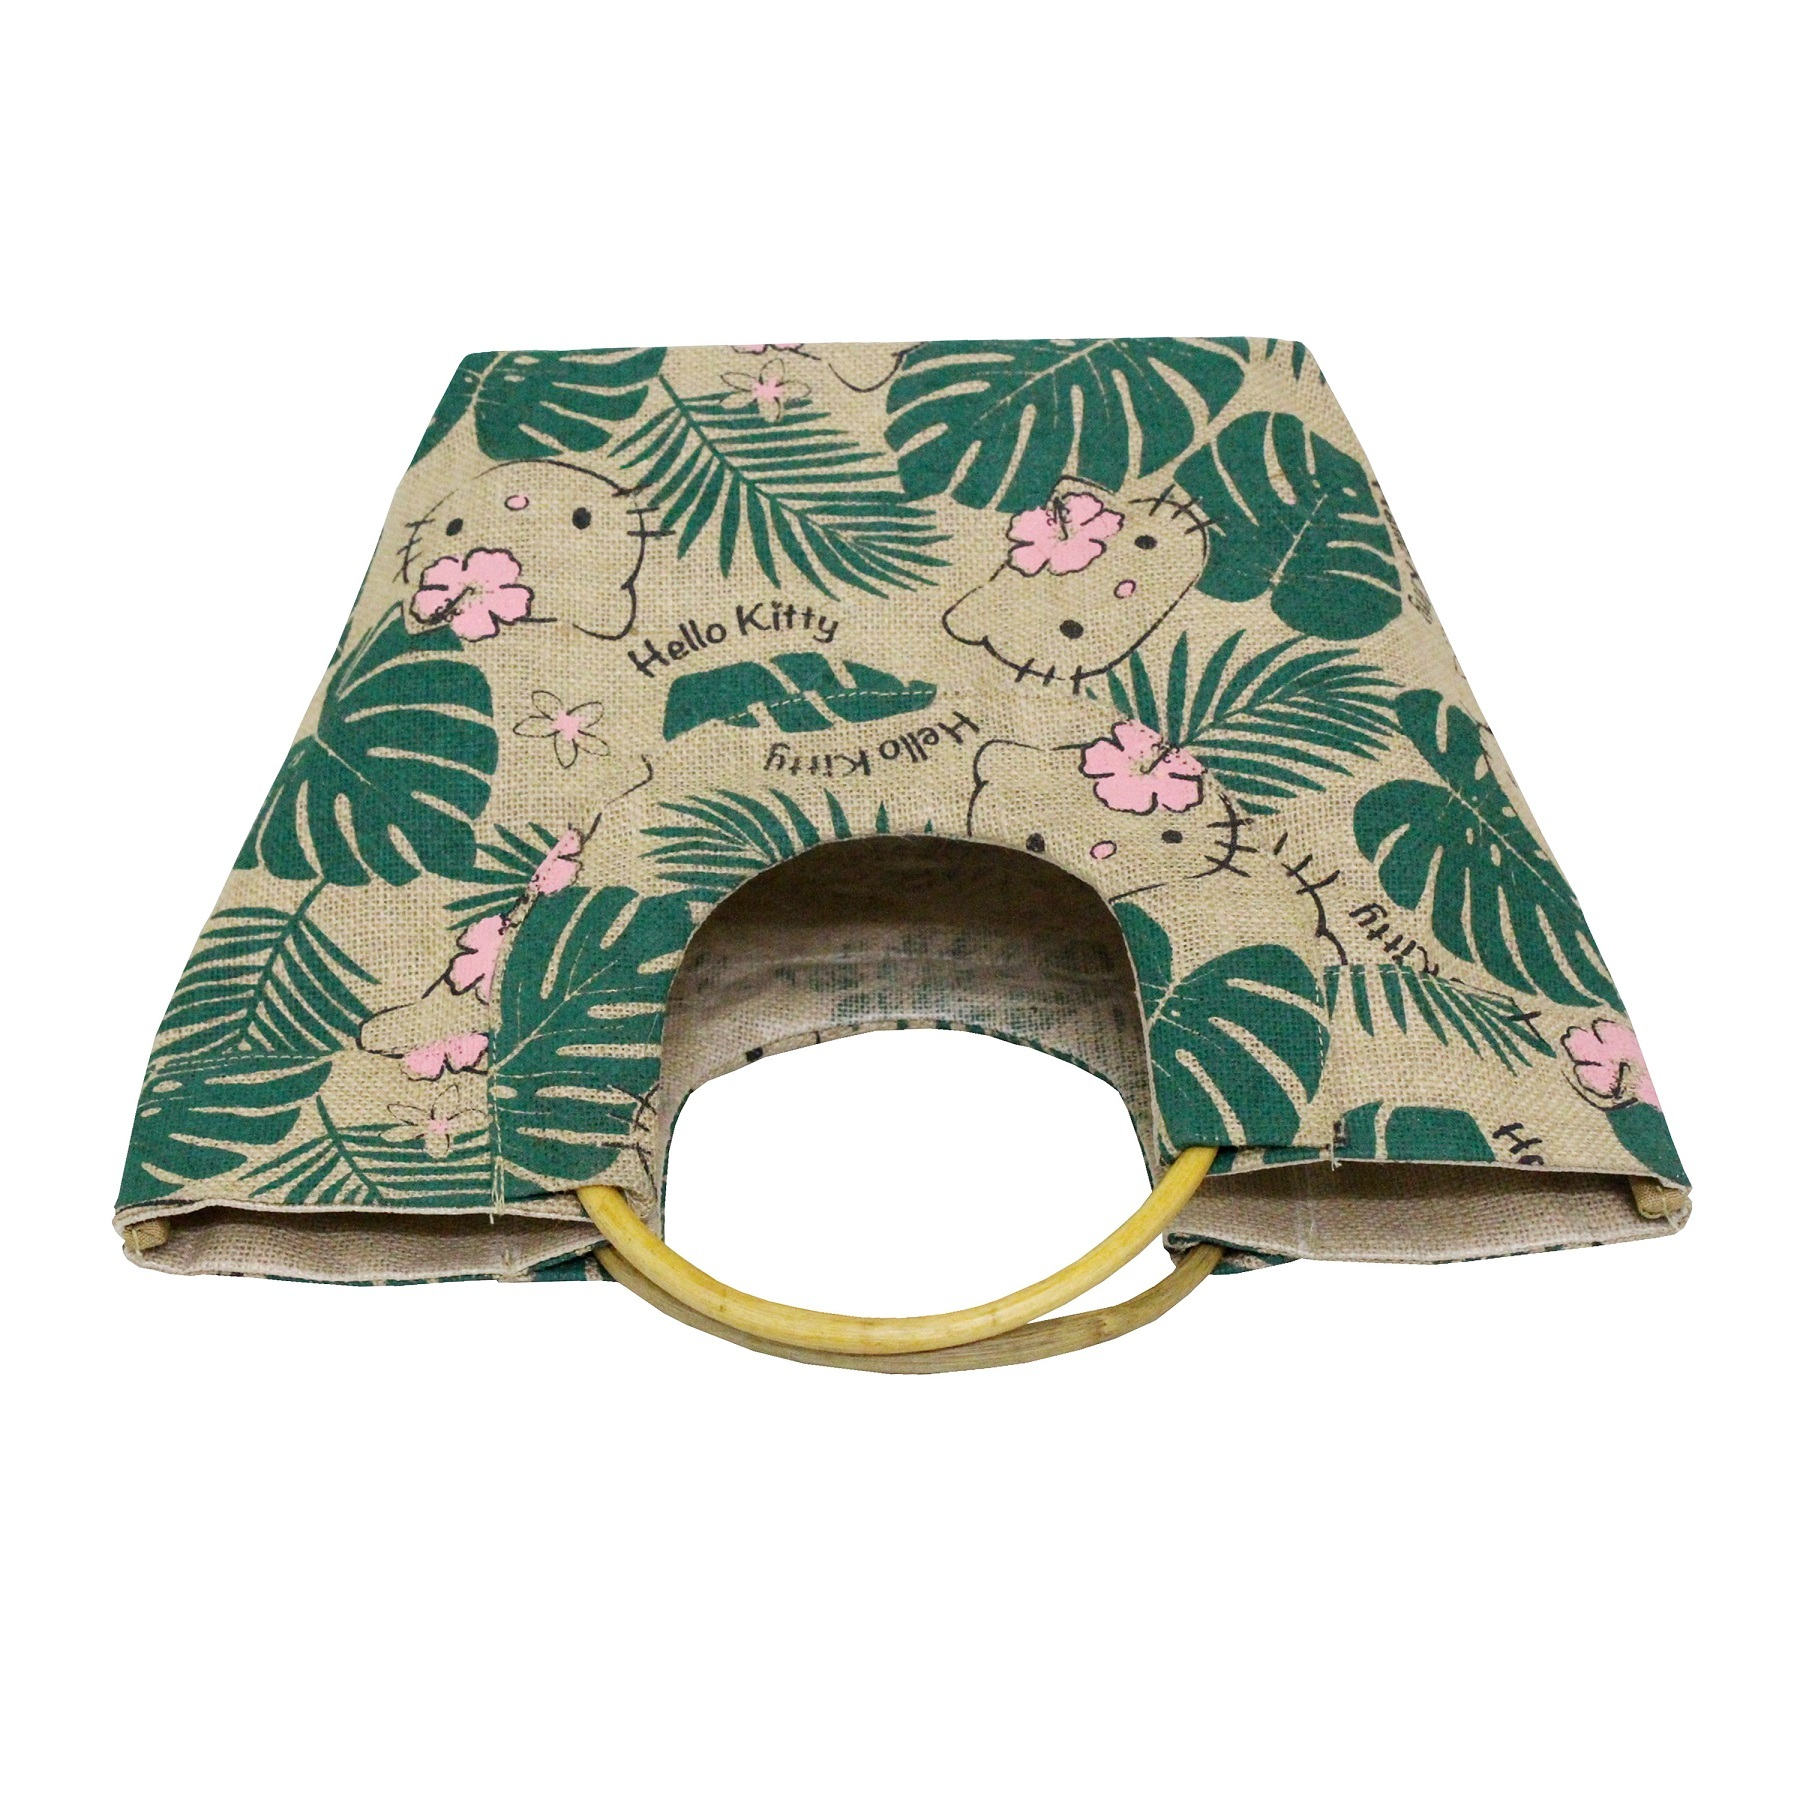 PP Laminated Jute Beach Bag With Round Wooden Cane Handle